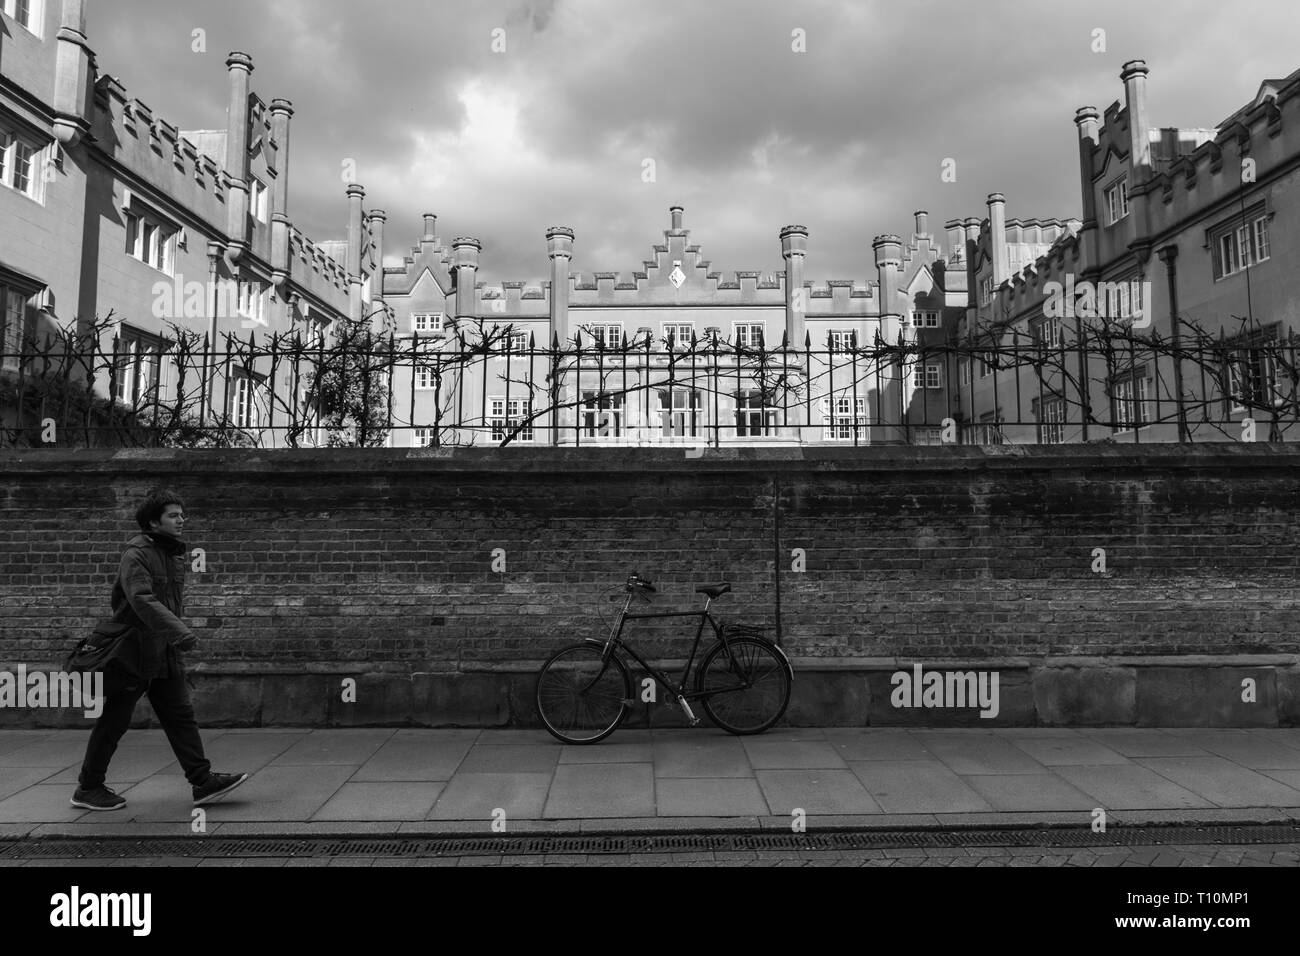 Cambridge, UK - March 14 2019: Parked bike and person walking outside Sidney Sussex College which is a member of the Univarsity of Cambridge, Cambridg - Stock Image